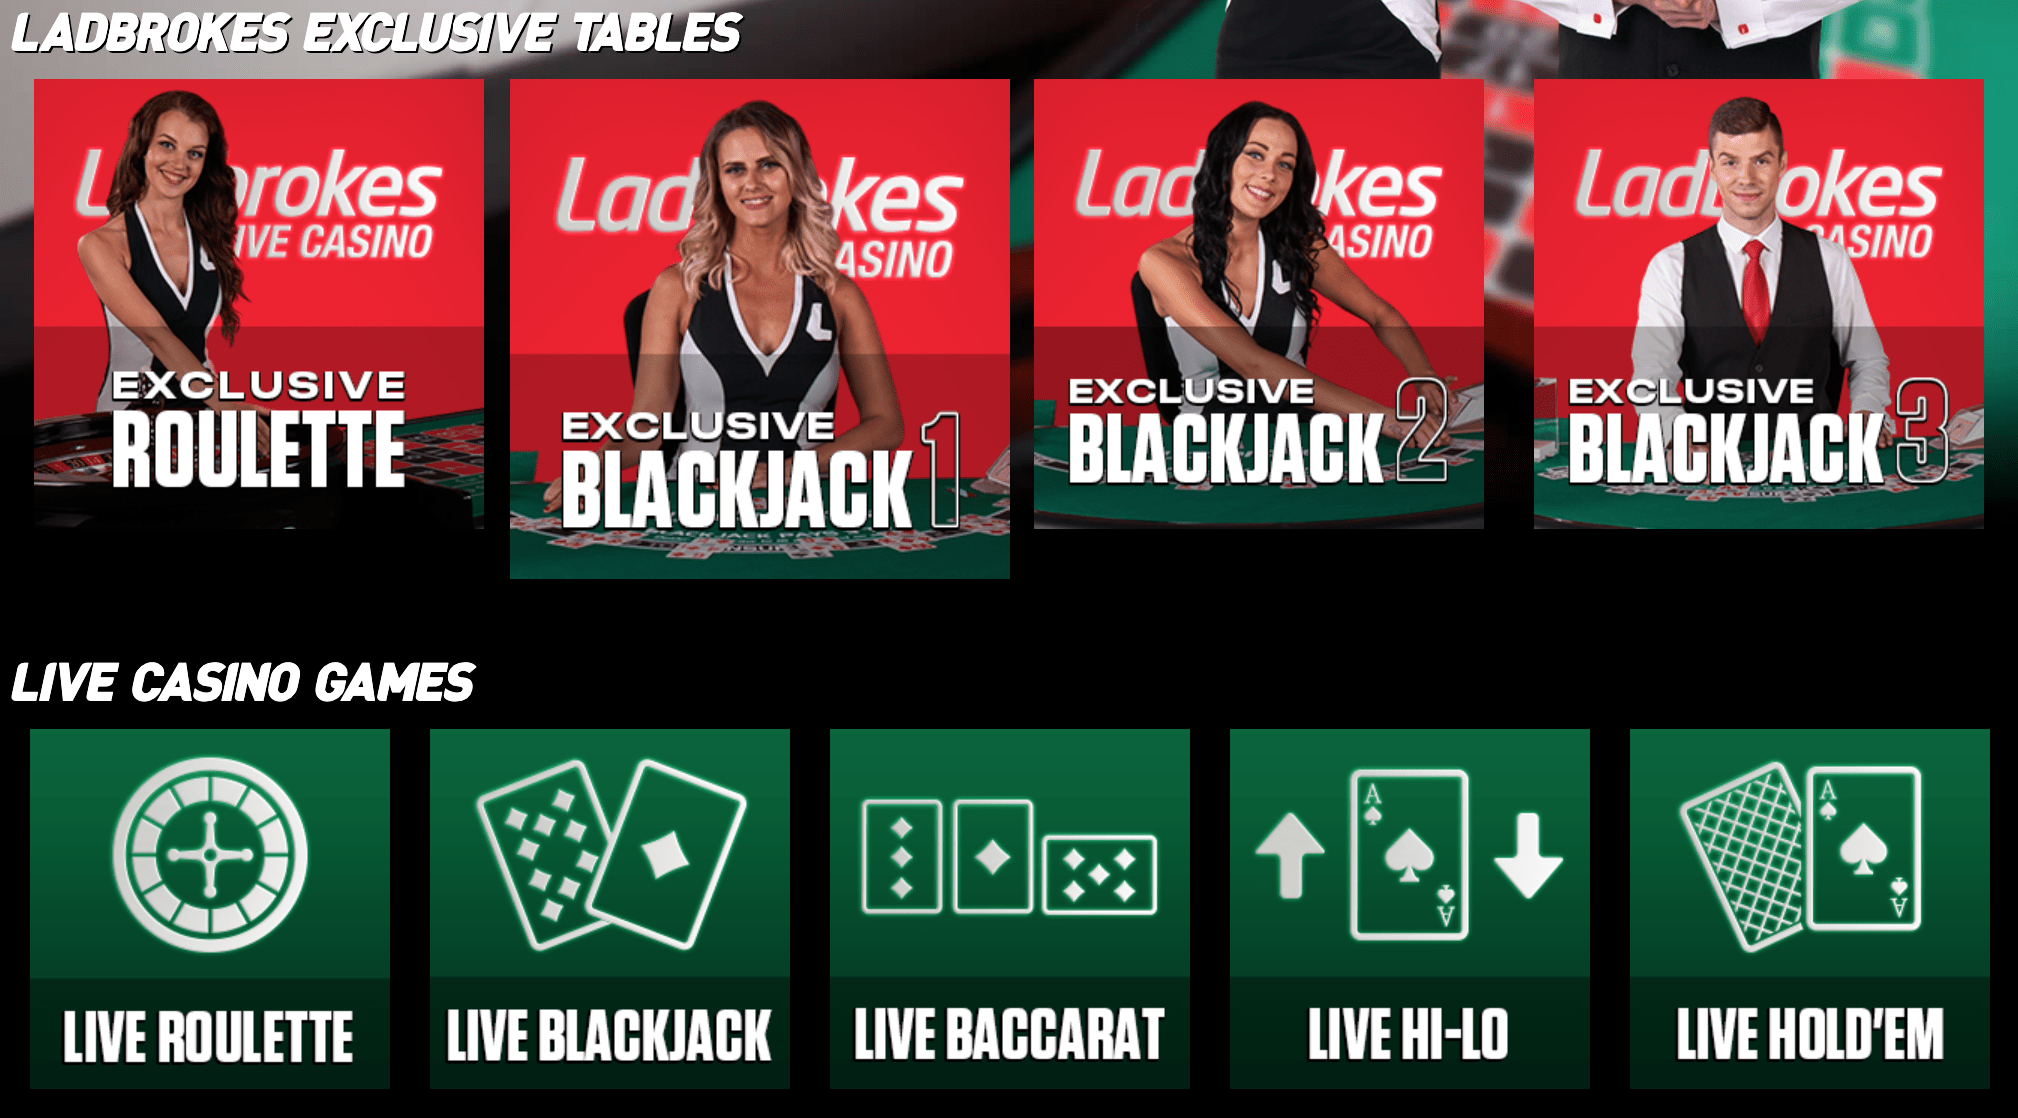 Ladbrokes live blackjack review